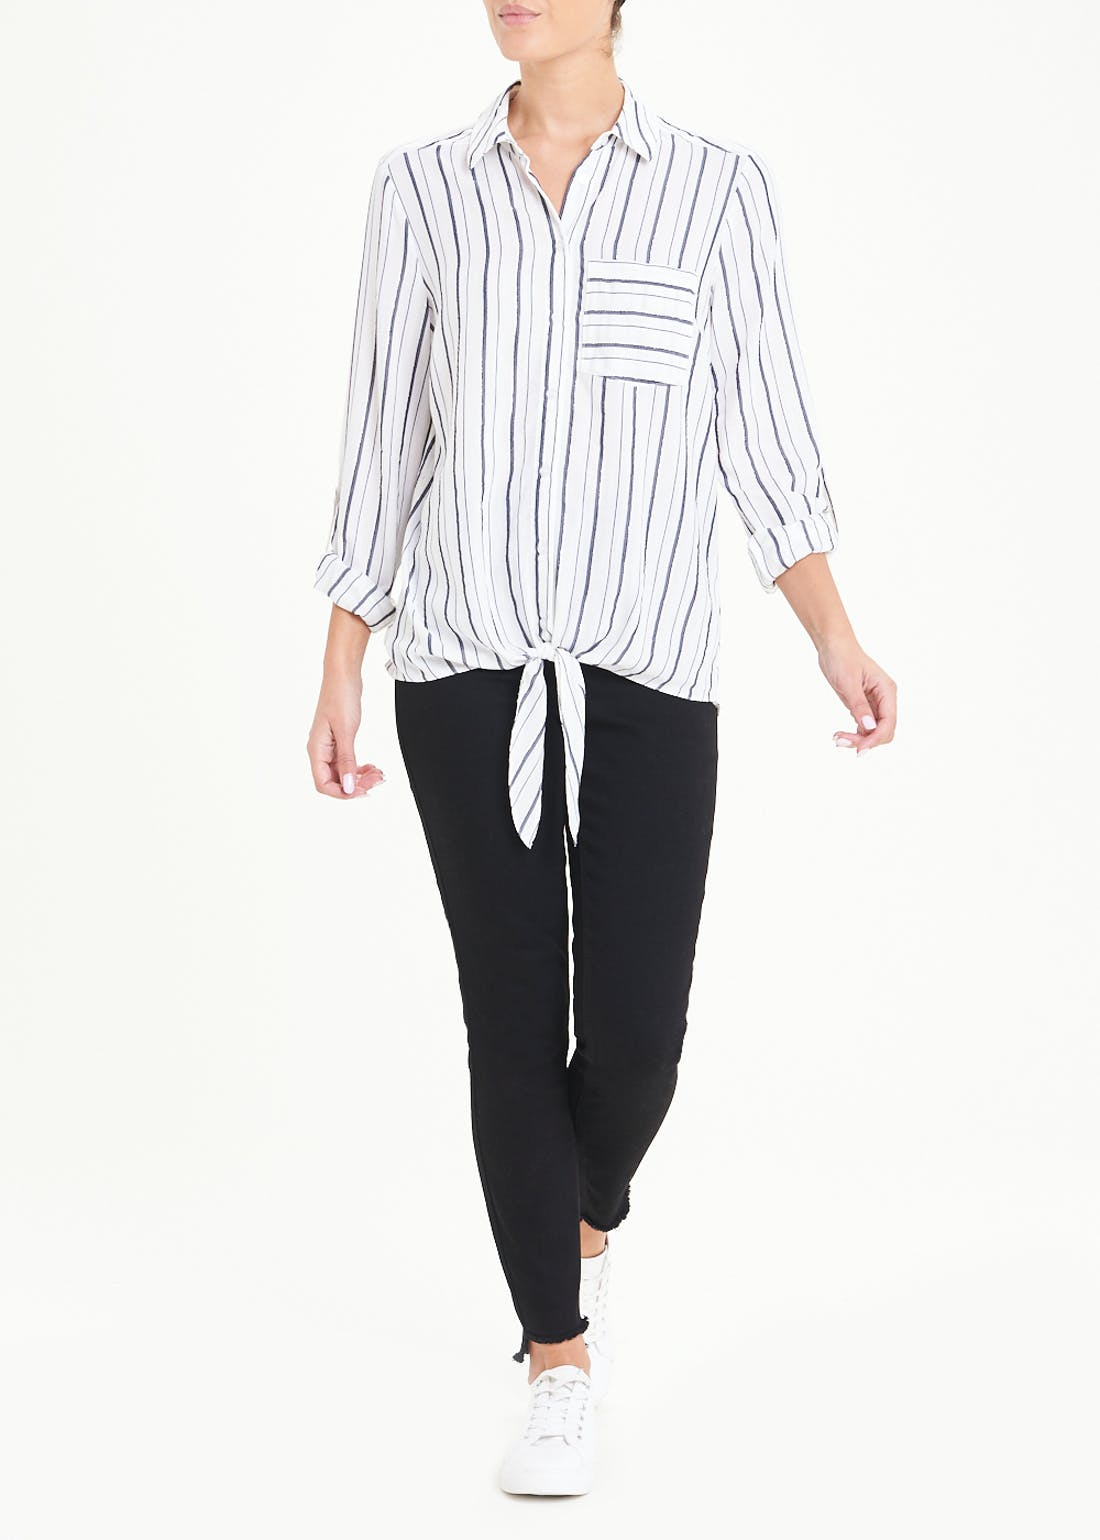 3/4 Sleeve Sparkle Stripe Tie Front Shirt